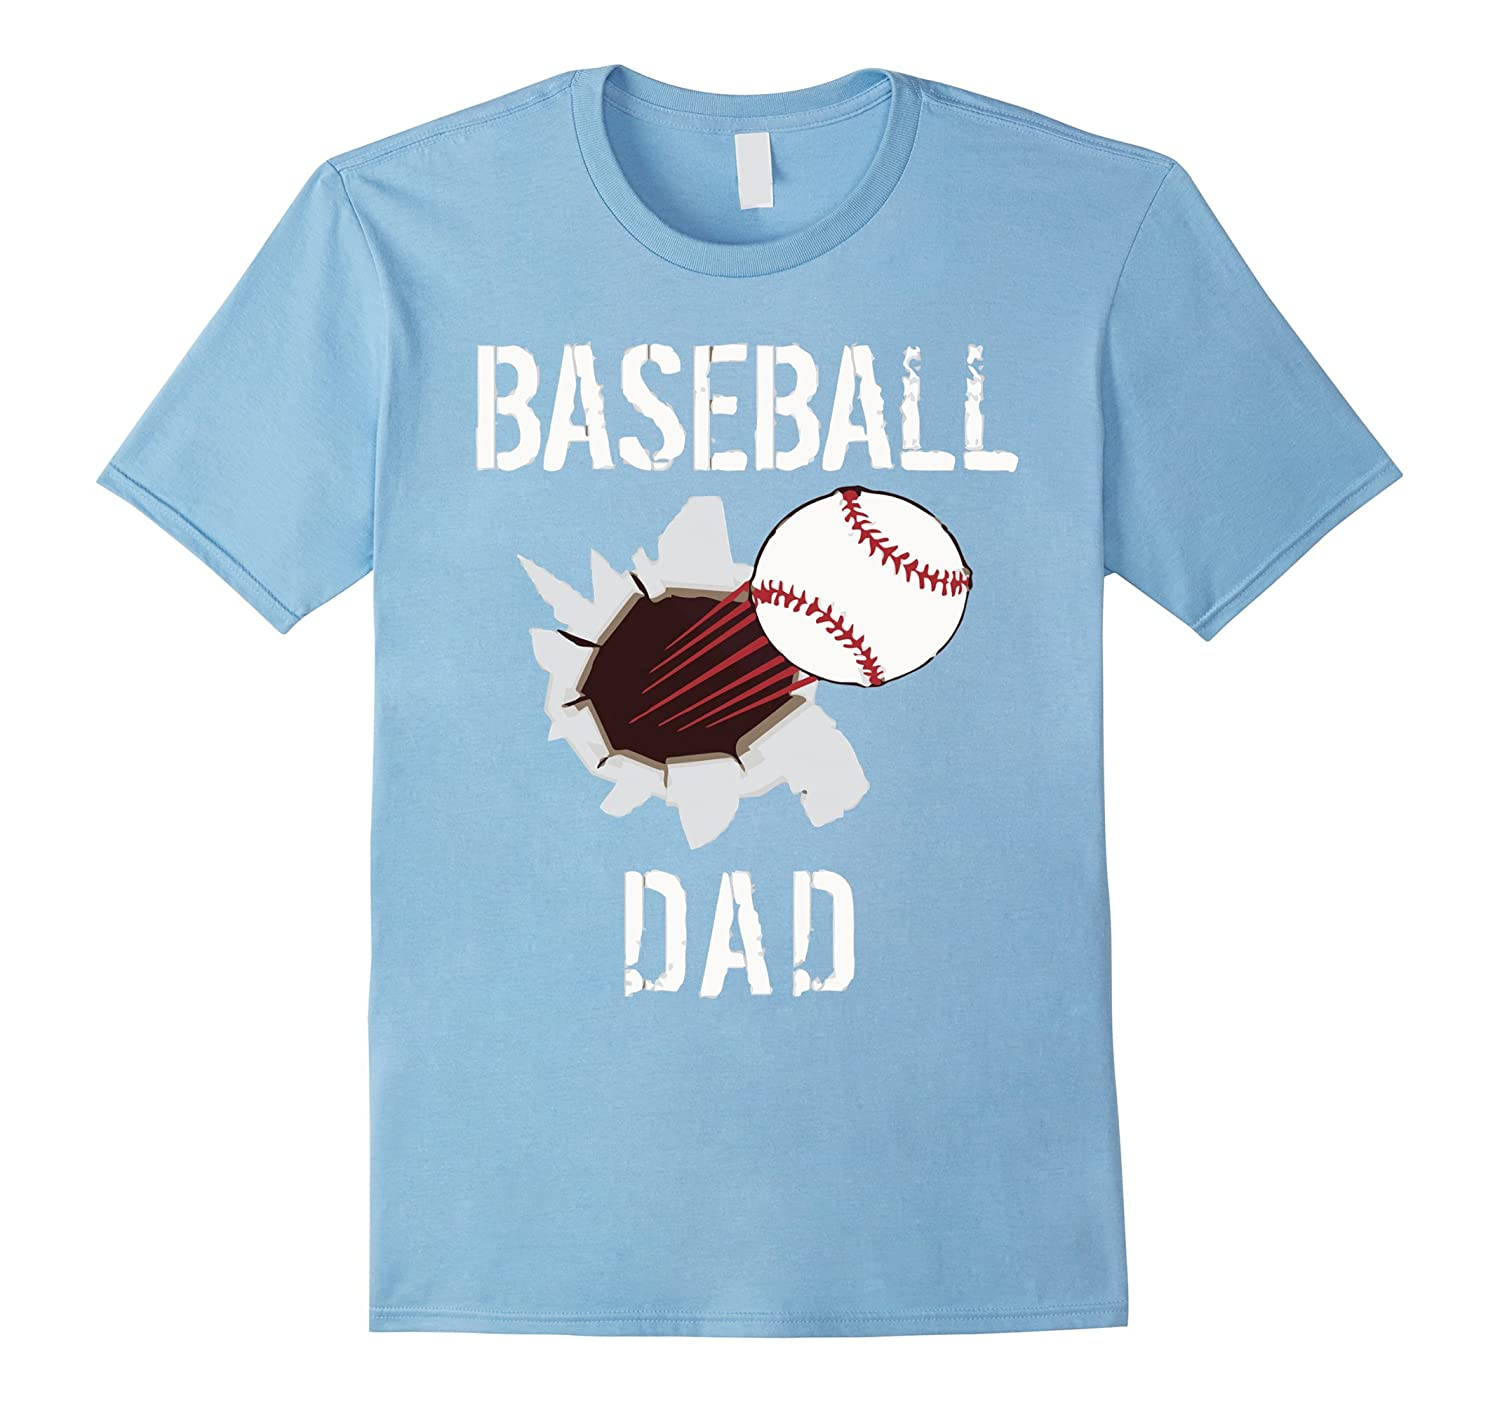 Baseball dad t shirt gift for fathers day art artvinatee T shirts for dad